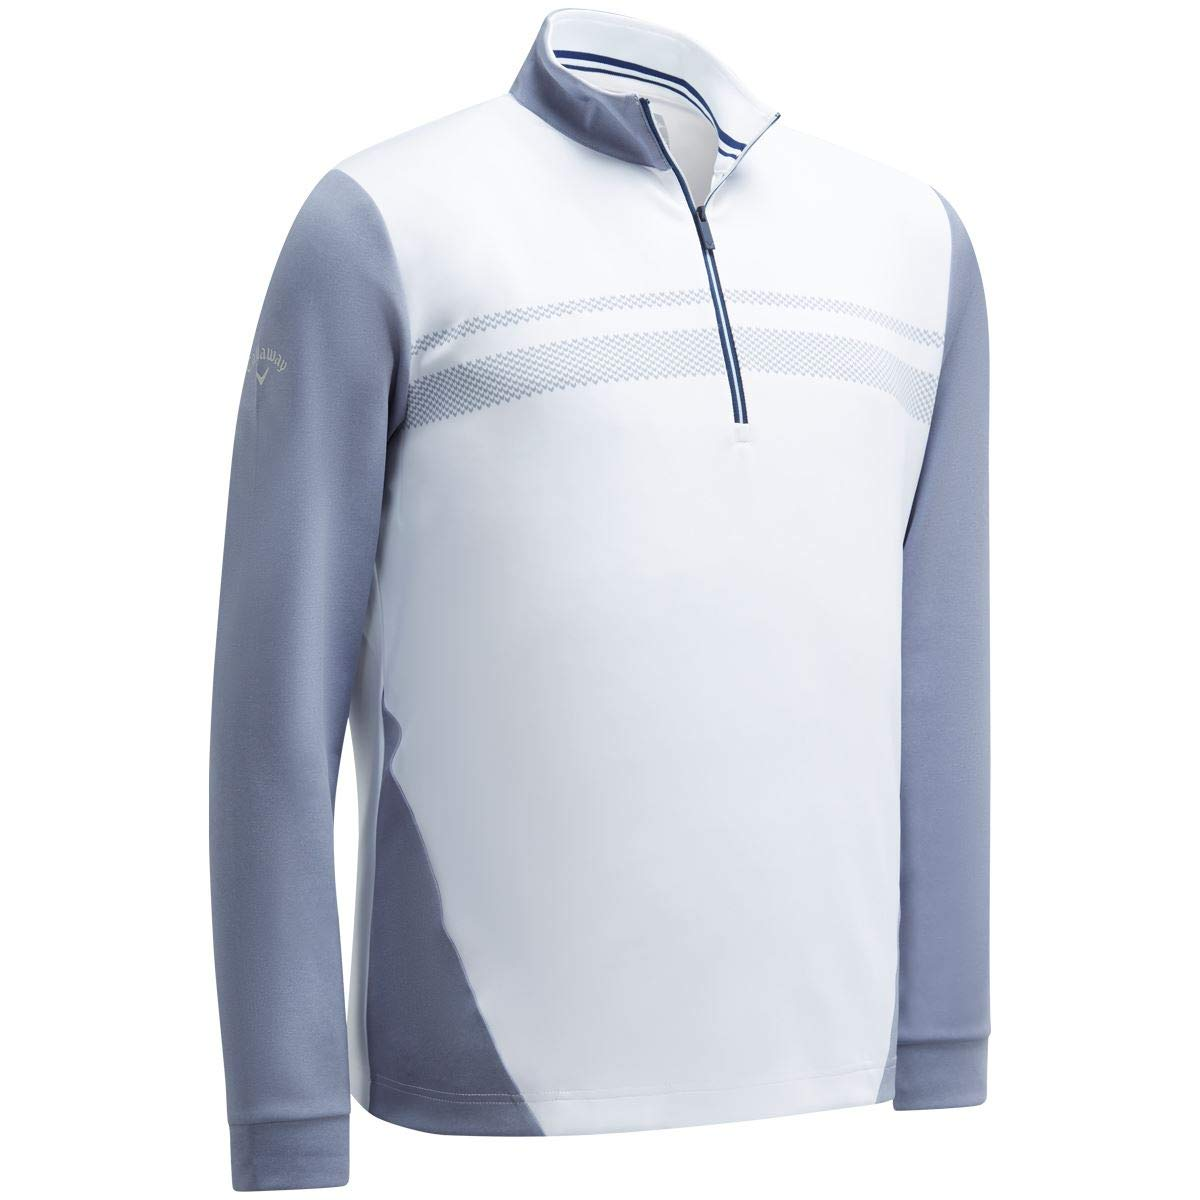 Callaway Golf 2019 Mens 1/4 Zip High Gauge Fleece Thermal Stretch Golf Pullover Bright White Small by Callaway